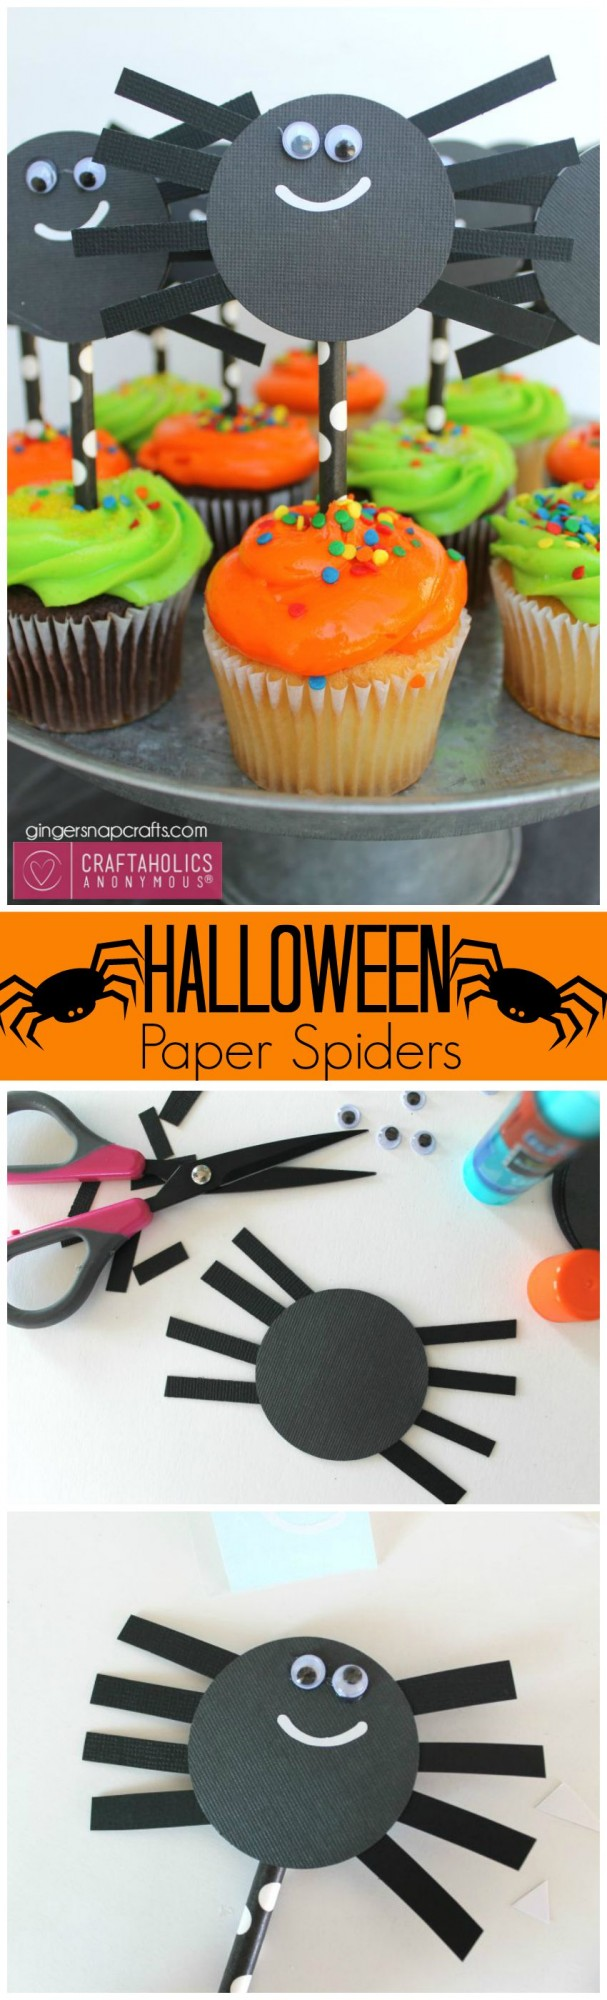 Halloween Paper Spiders Craft || Could put on cupcakes, hang from ceiling with fishline, or glue to twine for a garland. Or have pieces all cut out and let kids assemble for a great Kids Halloween Craft idea.